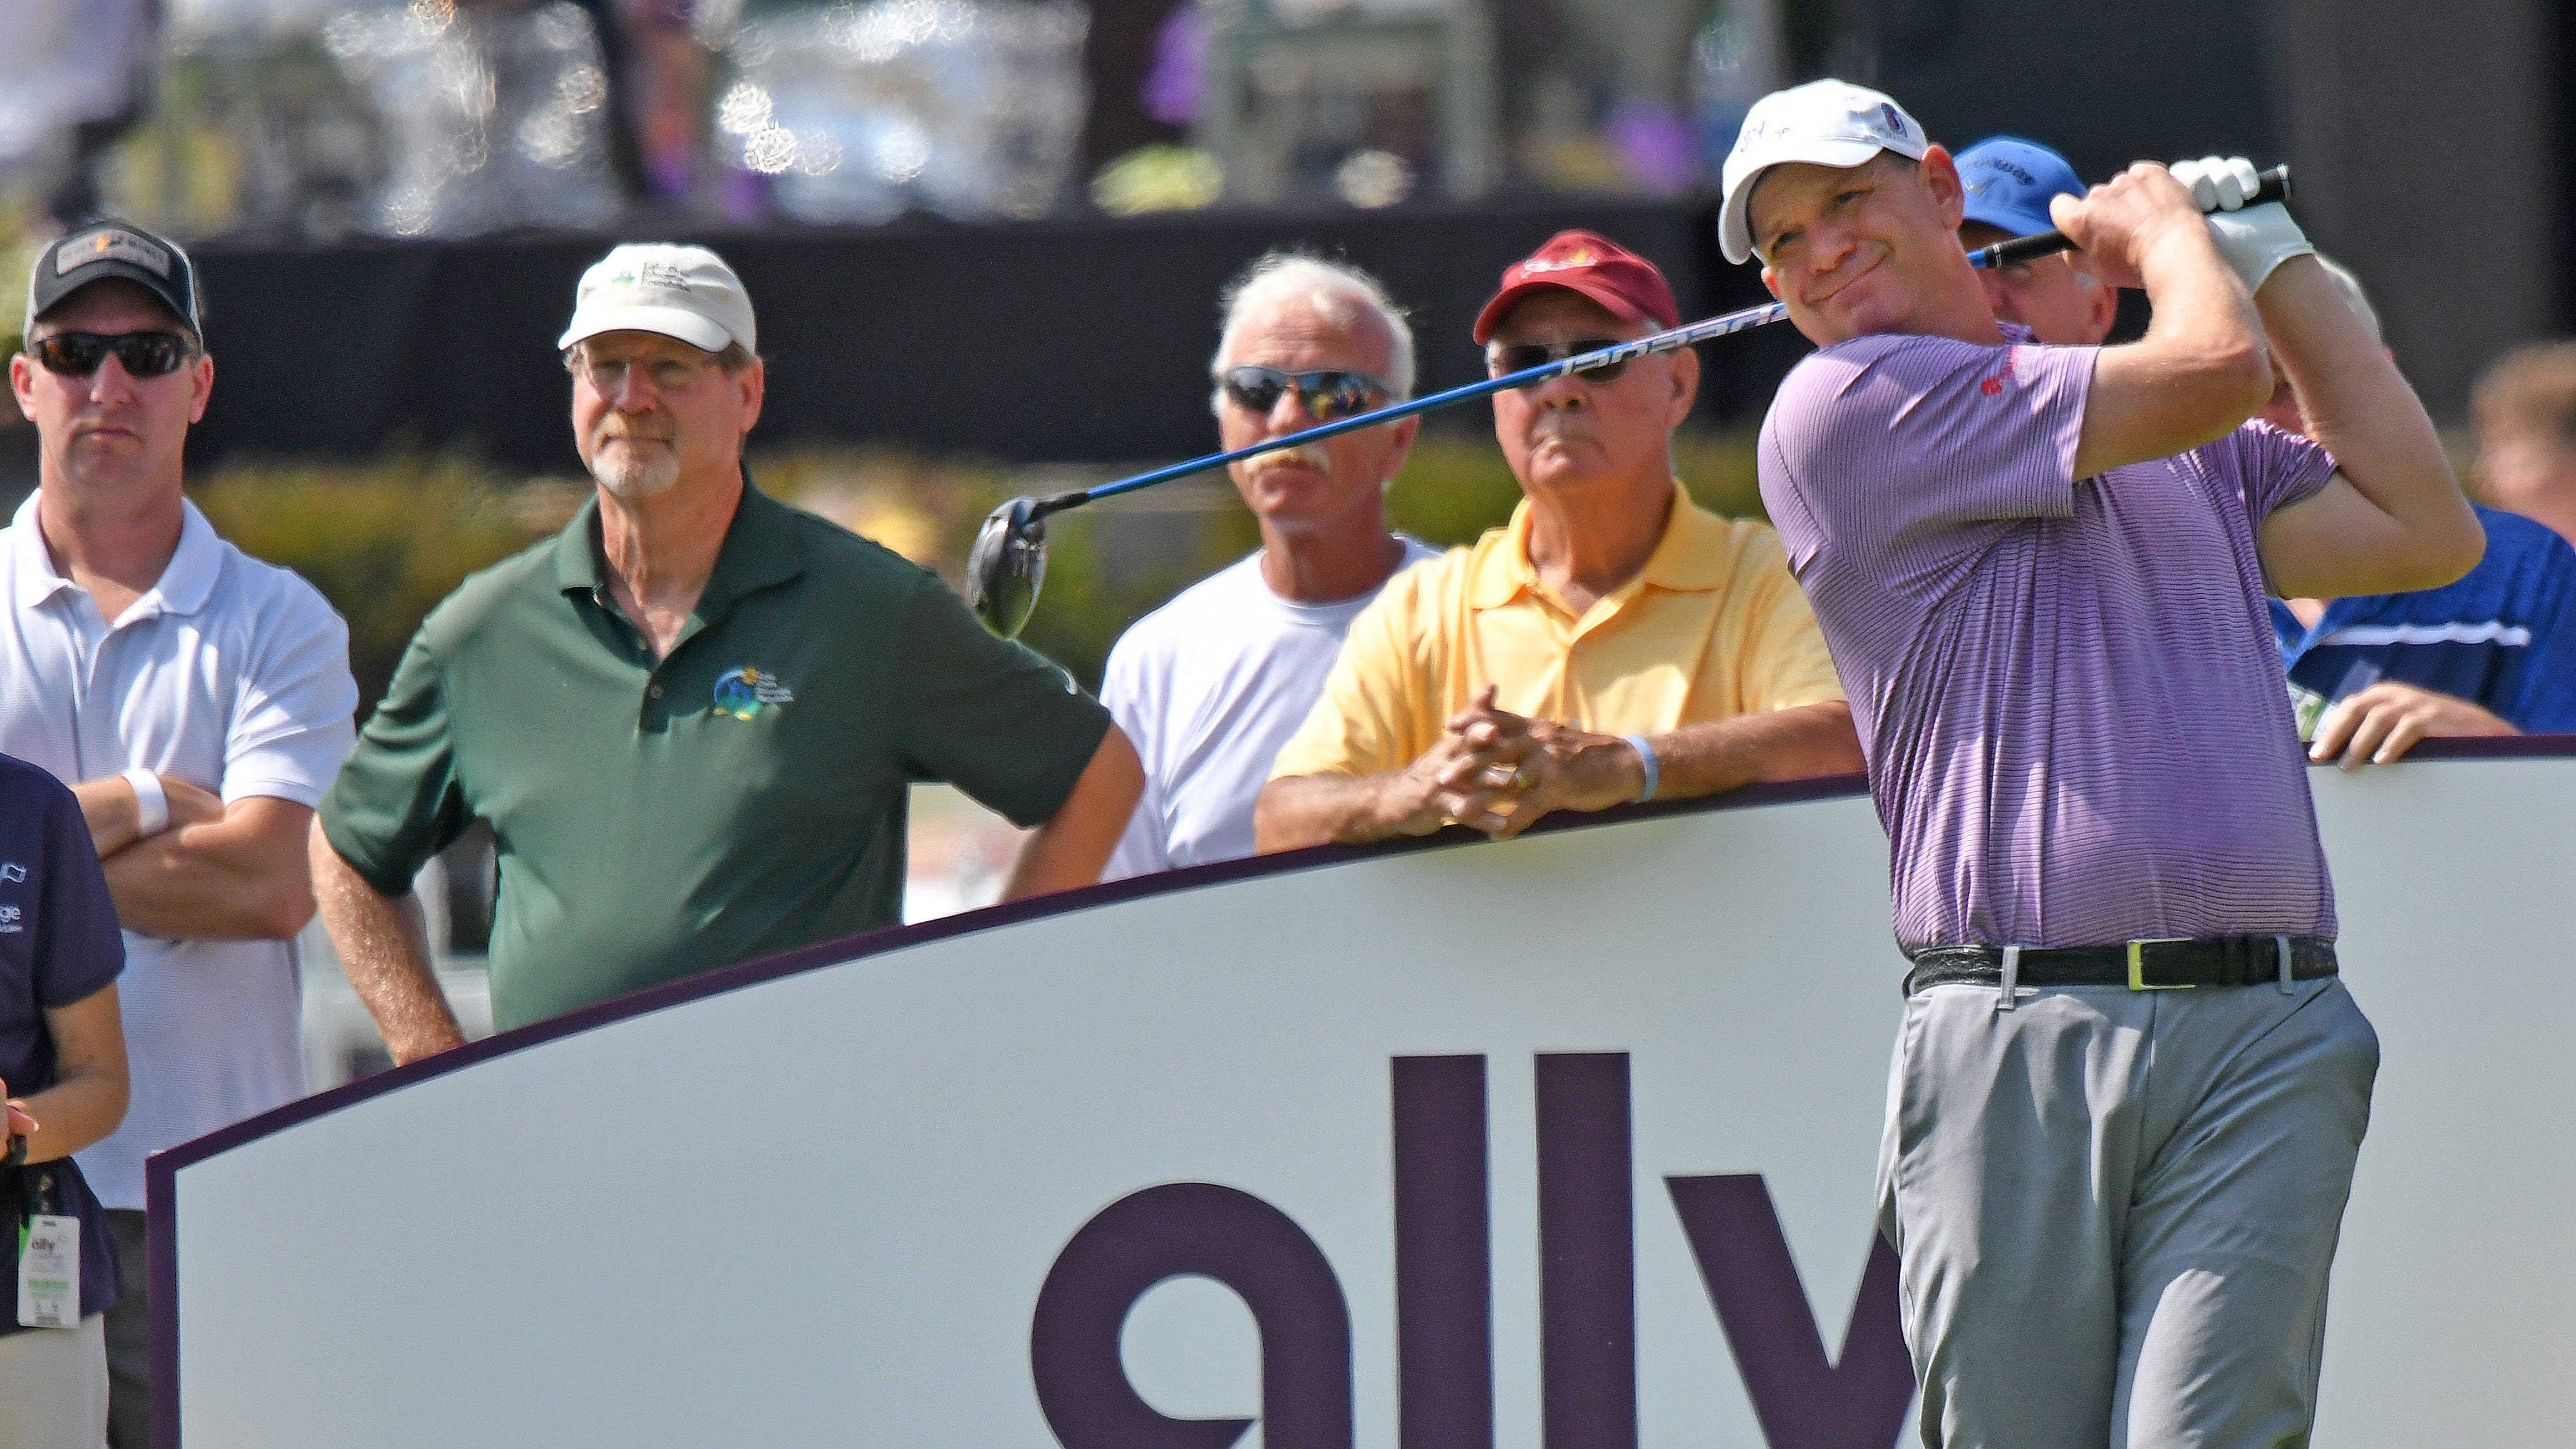 Tom Gillis on cusp of securing Champions Tour card for 2019